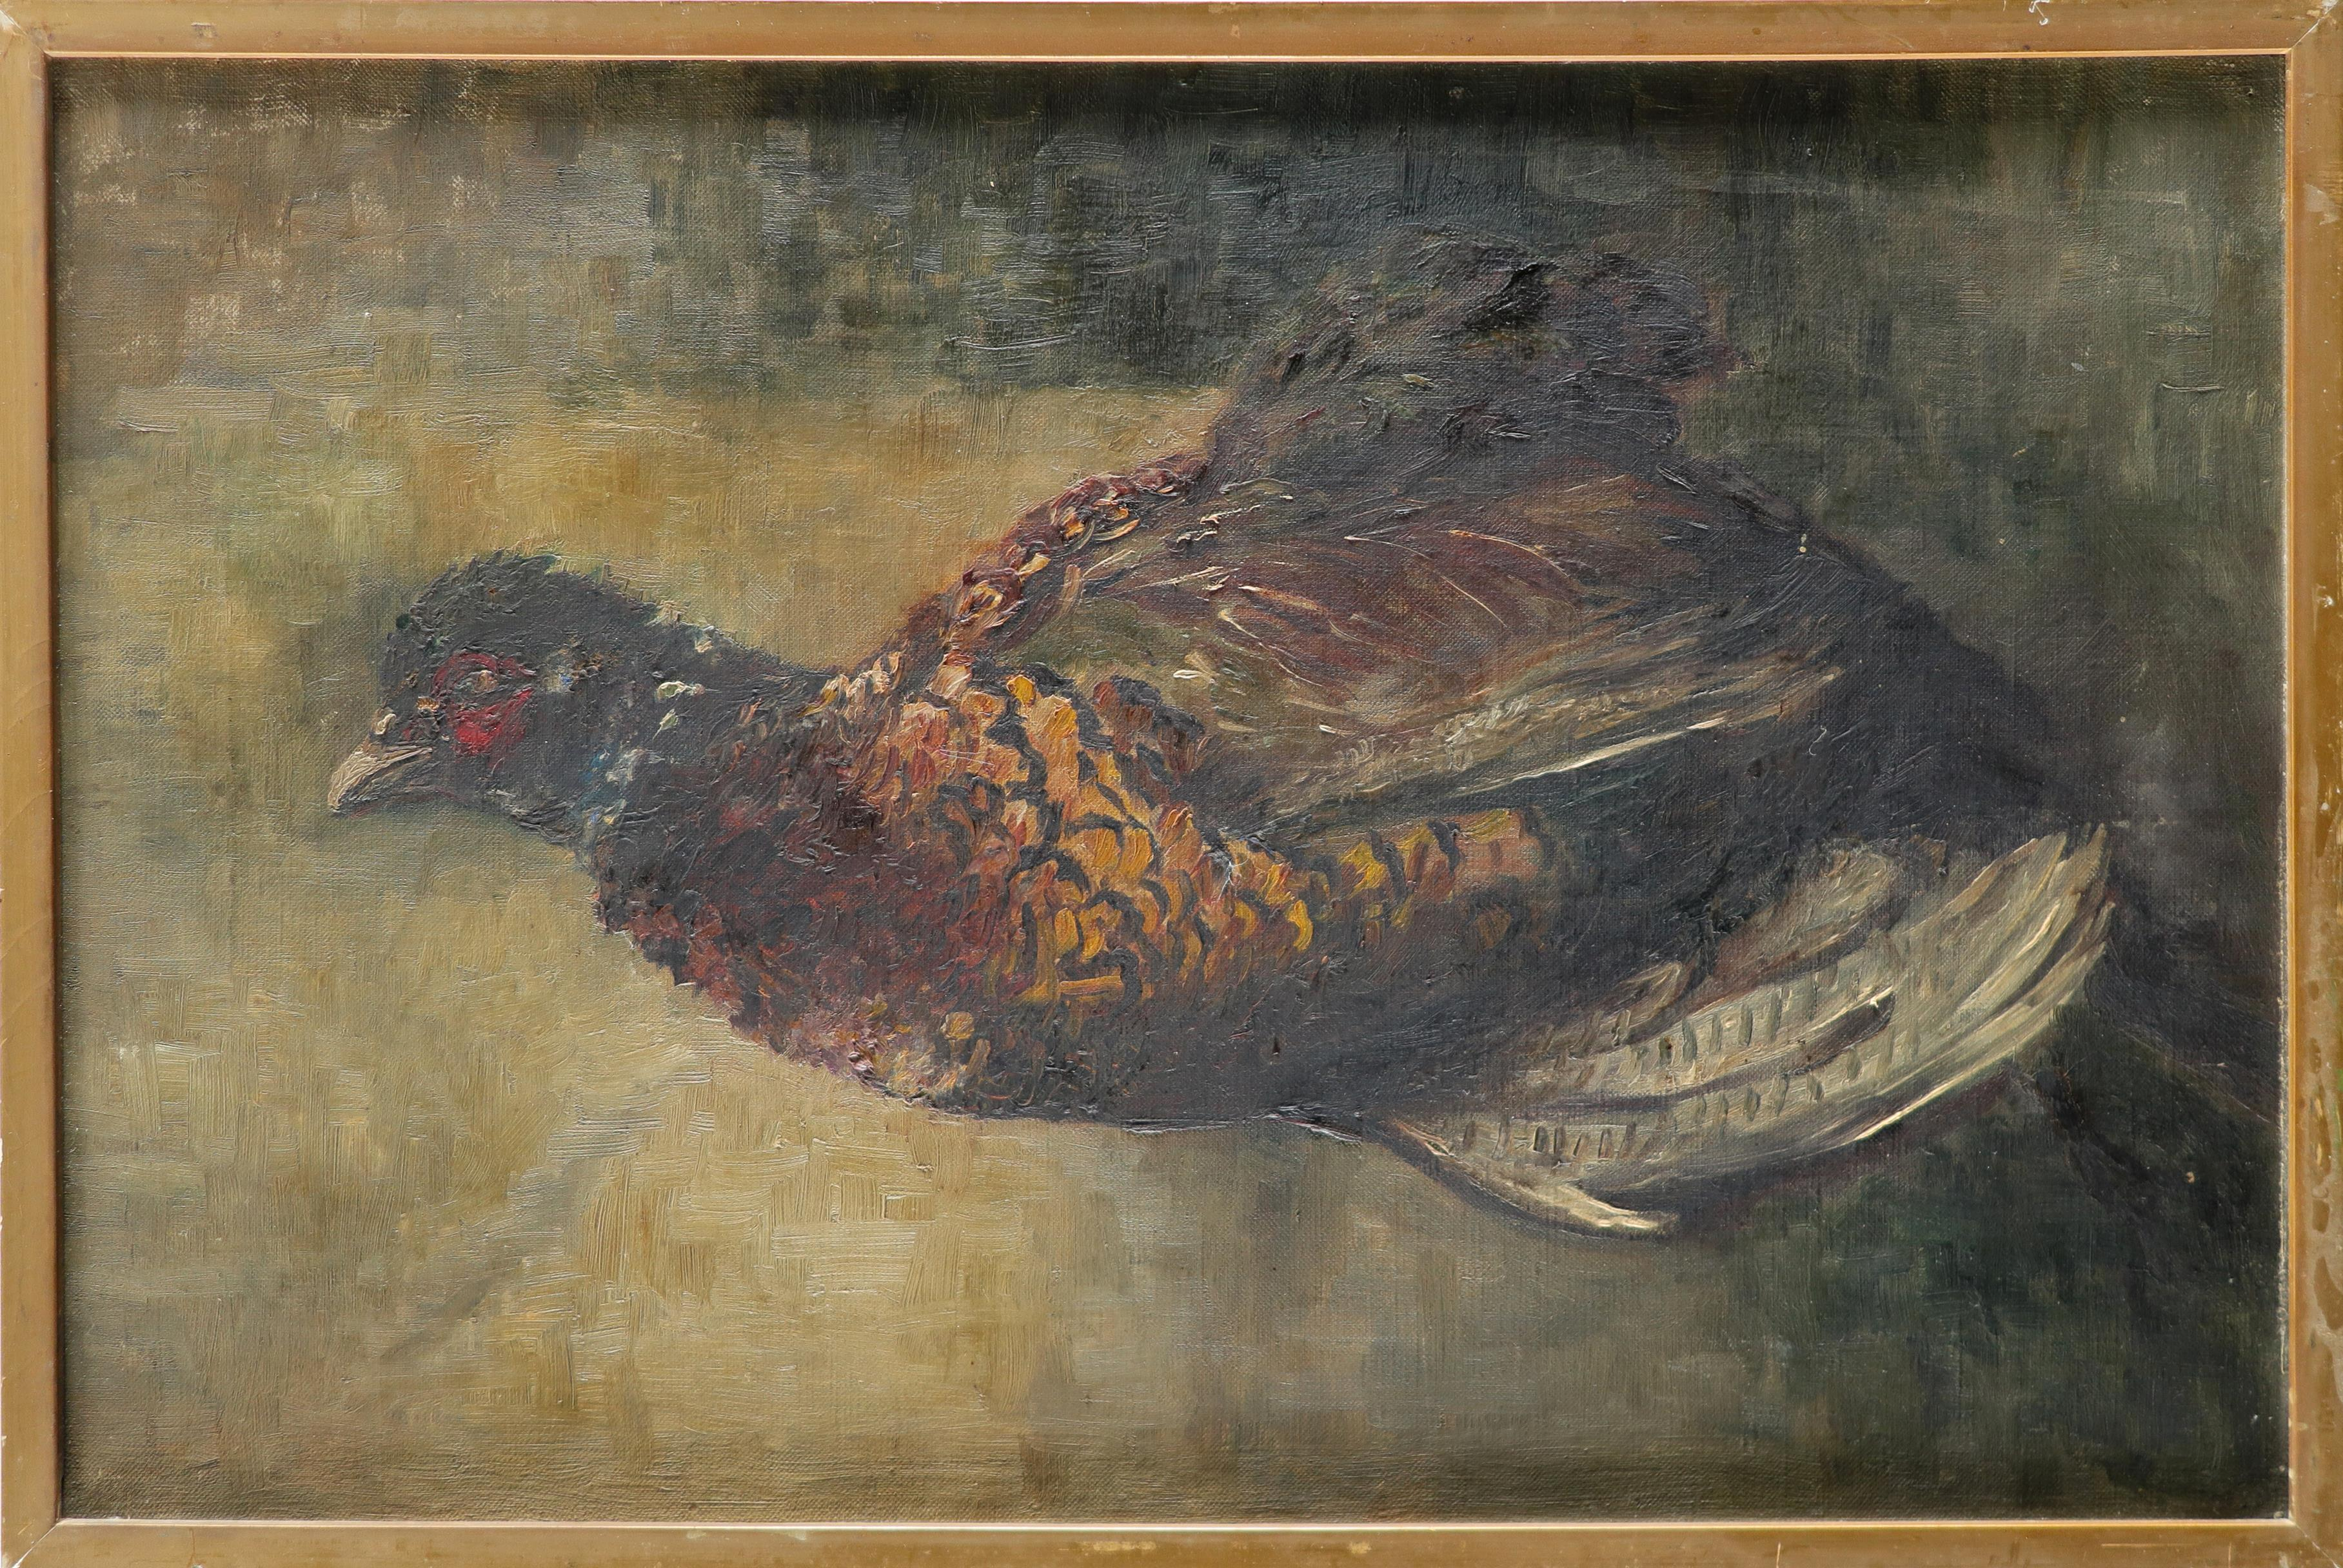 Jacques-Émile Blanche (French 1861-1942) Study of a pheasant Oil on canvas 35.6 x 53.5cm; 14 x - Image 2 of 3